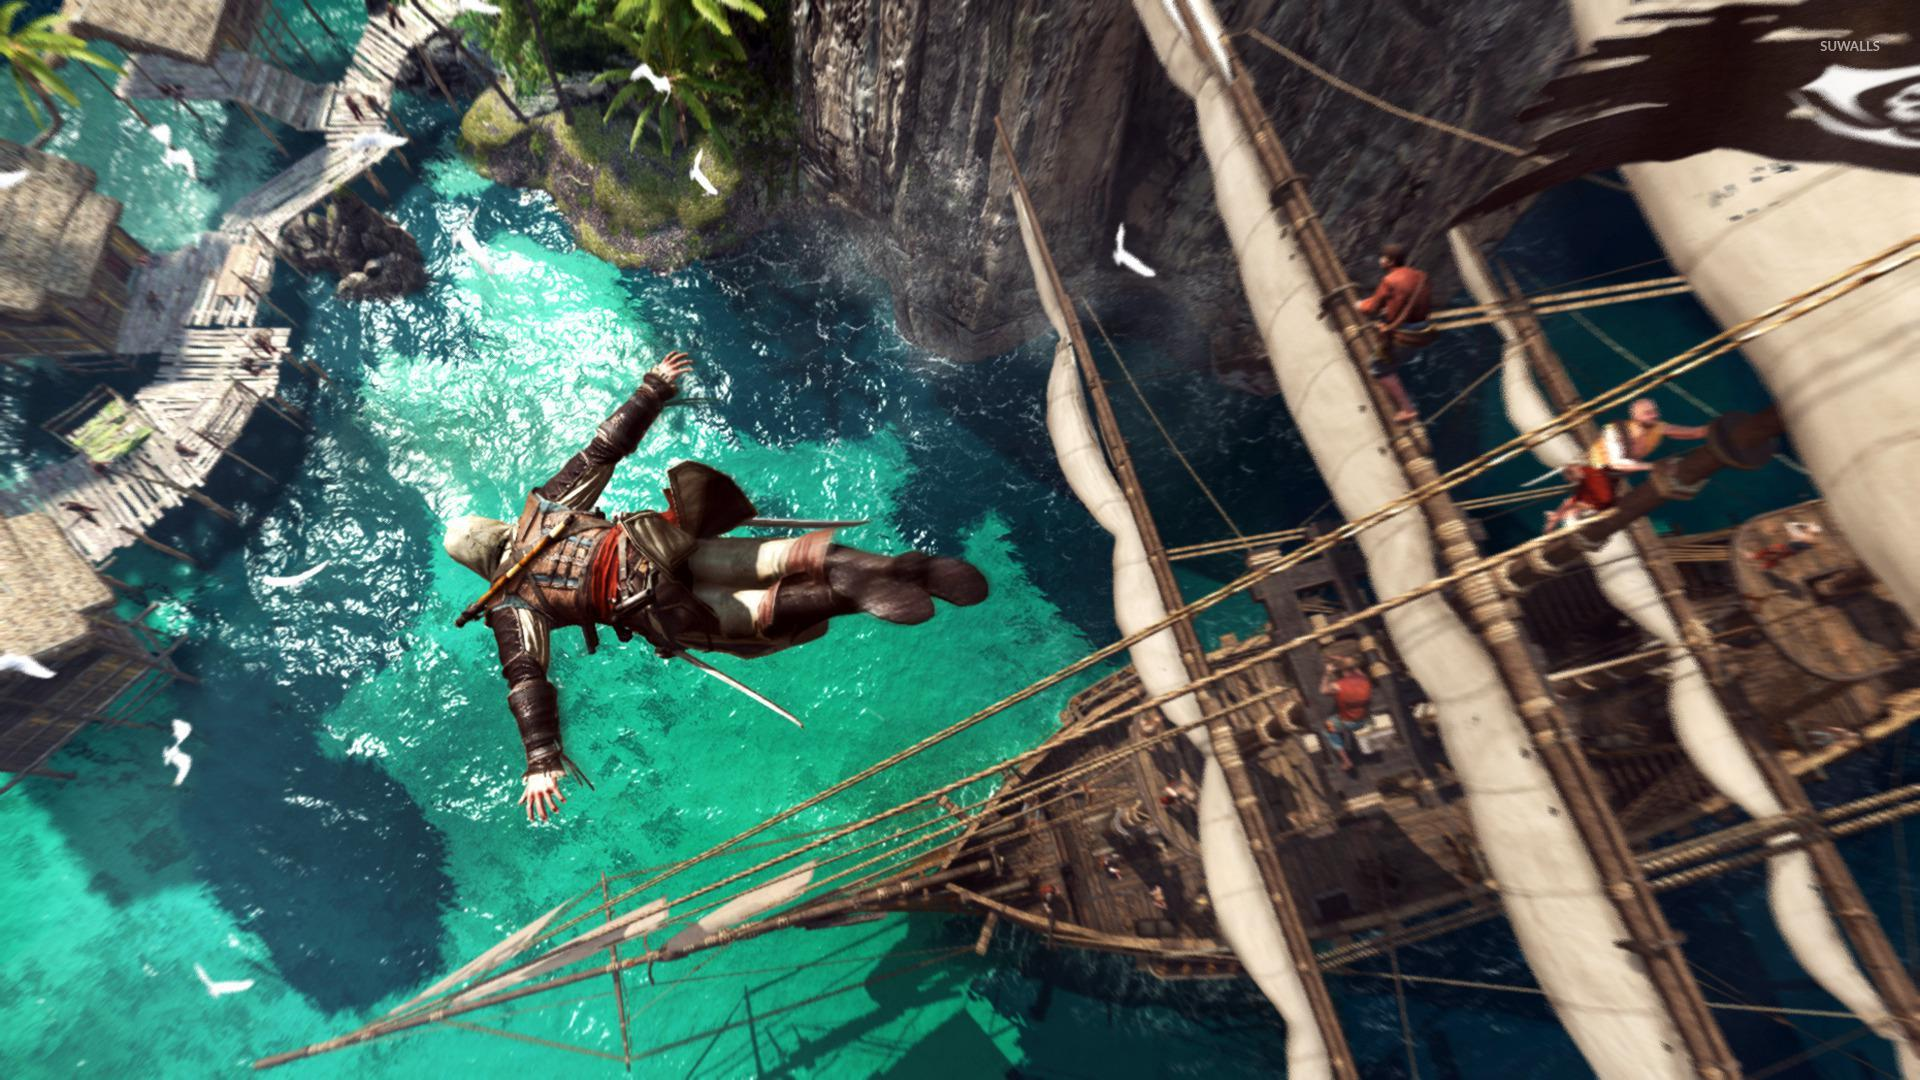 Assassin's Creed IV Black Flag in Assassin's Creed Games, Ranked From Worst to Best - 1